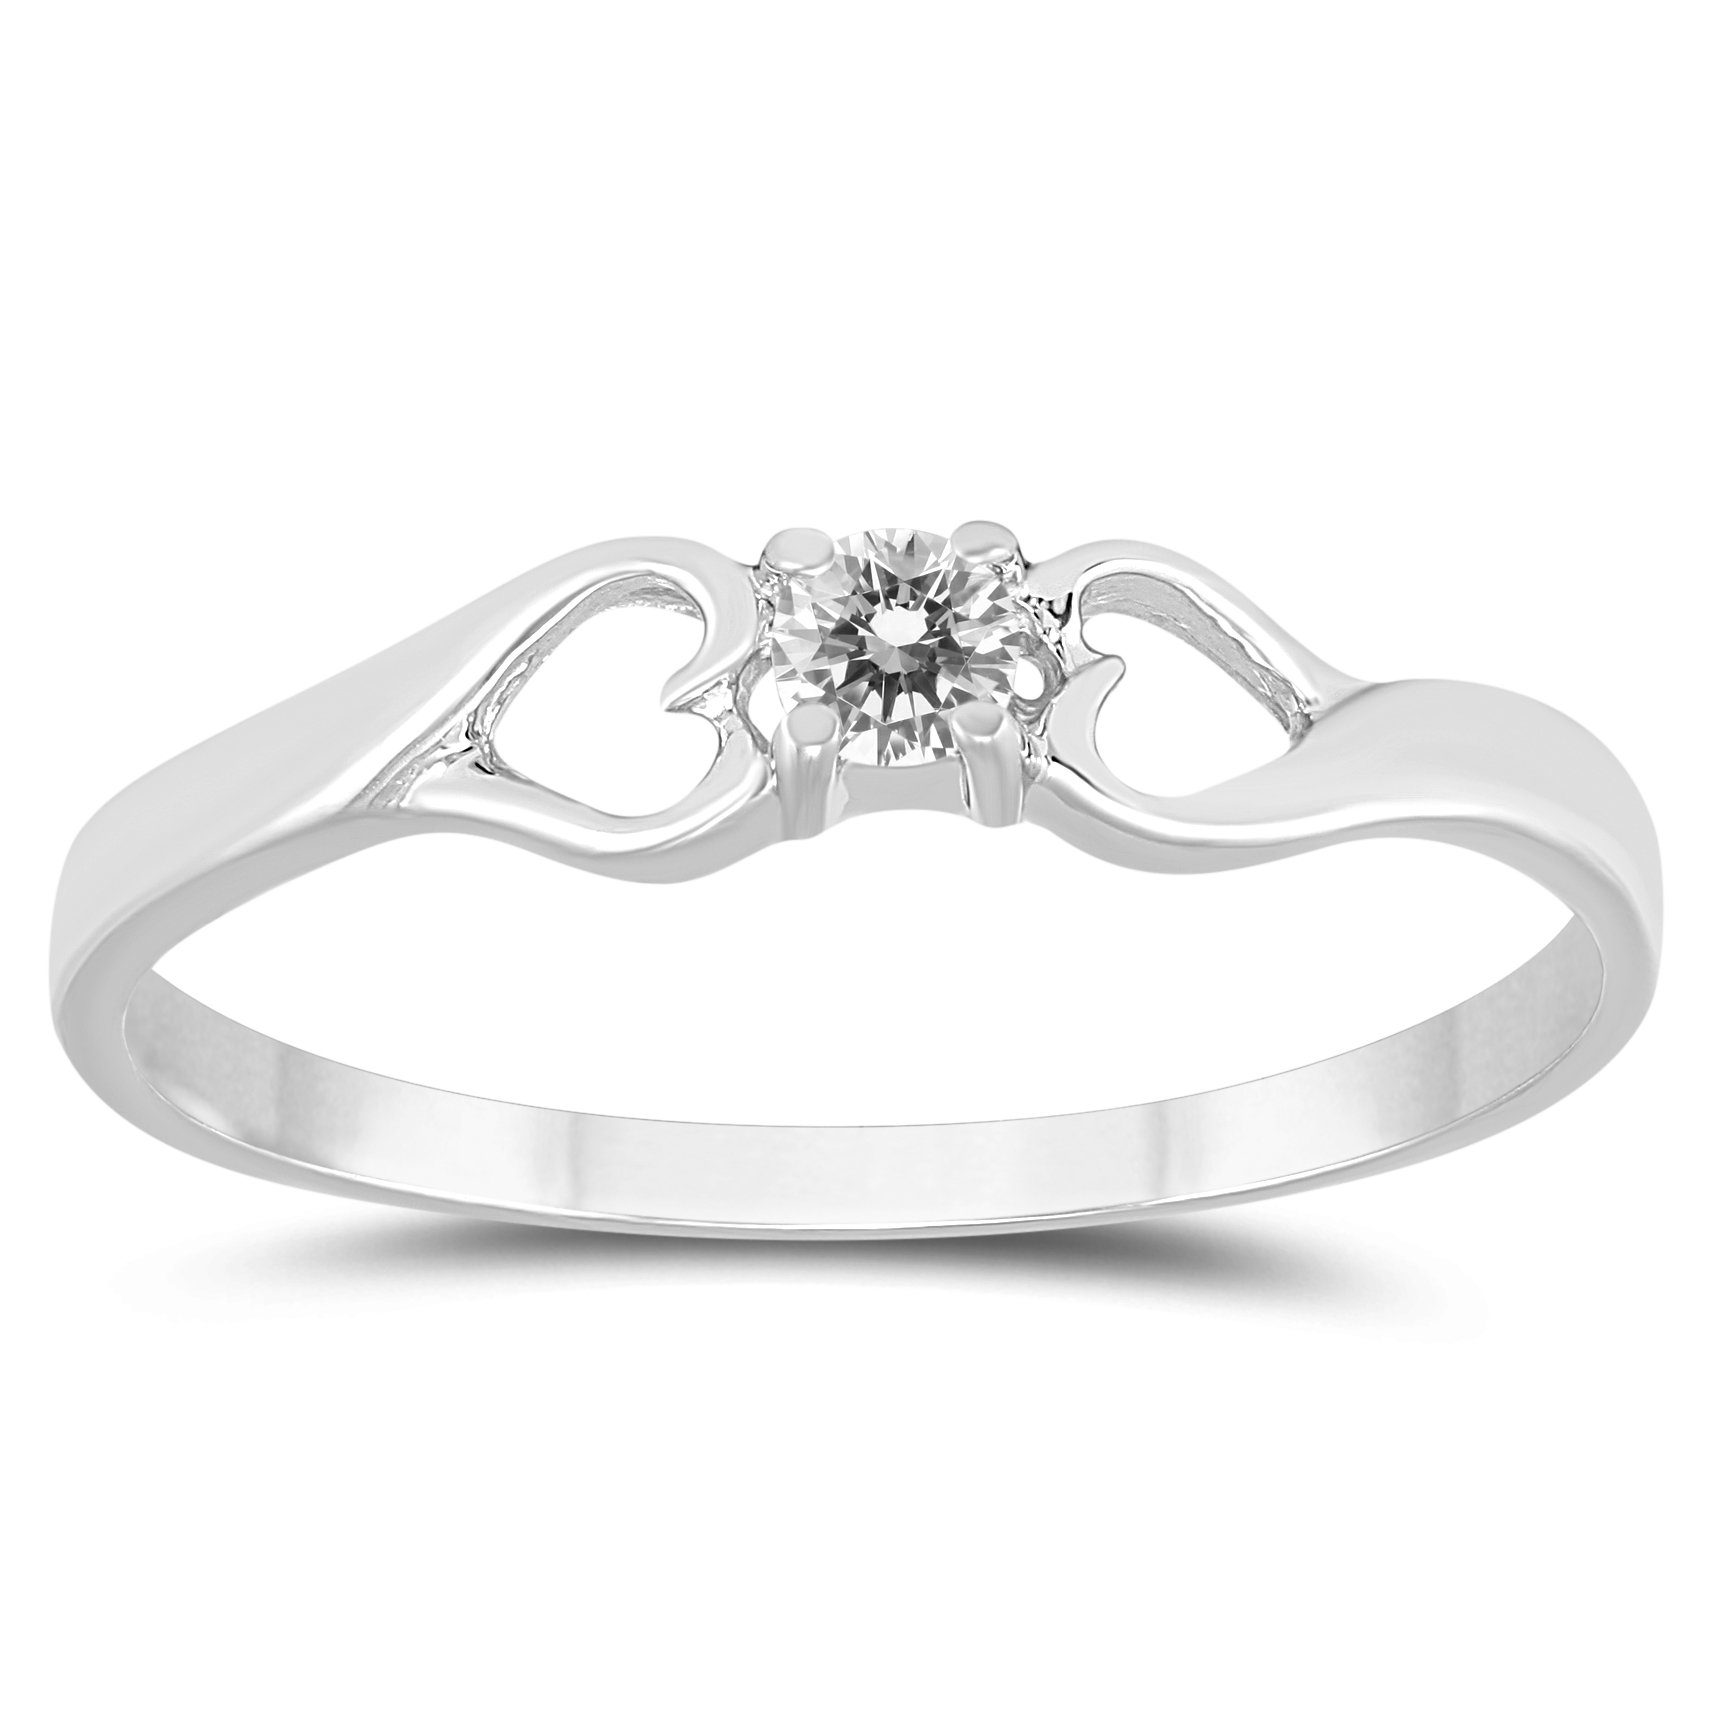 AGS Certified 1/10 Carat TW Diamond Heart Promise Ring in 10K White Gold by Szul